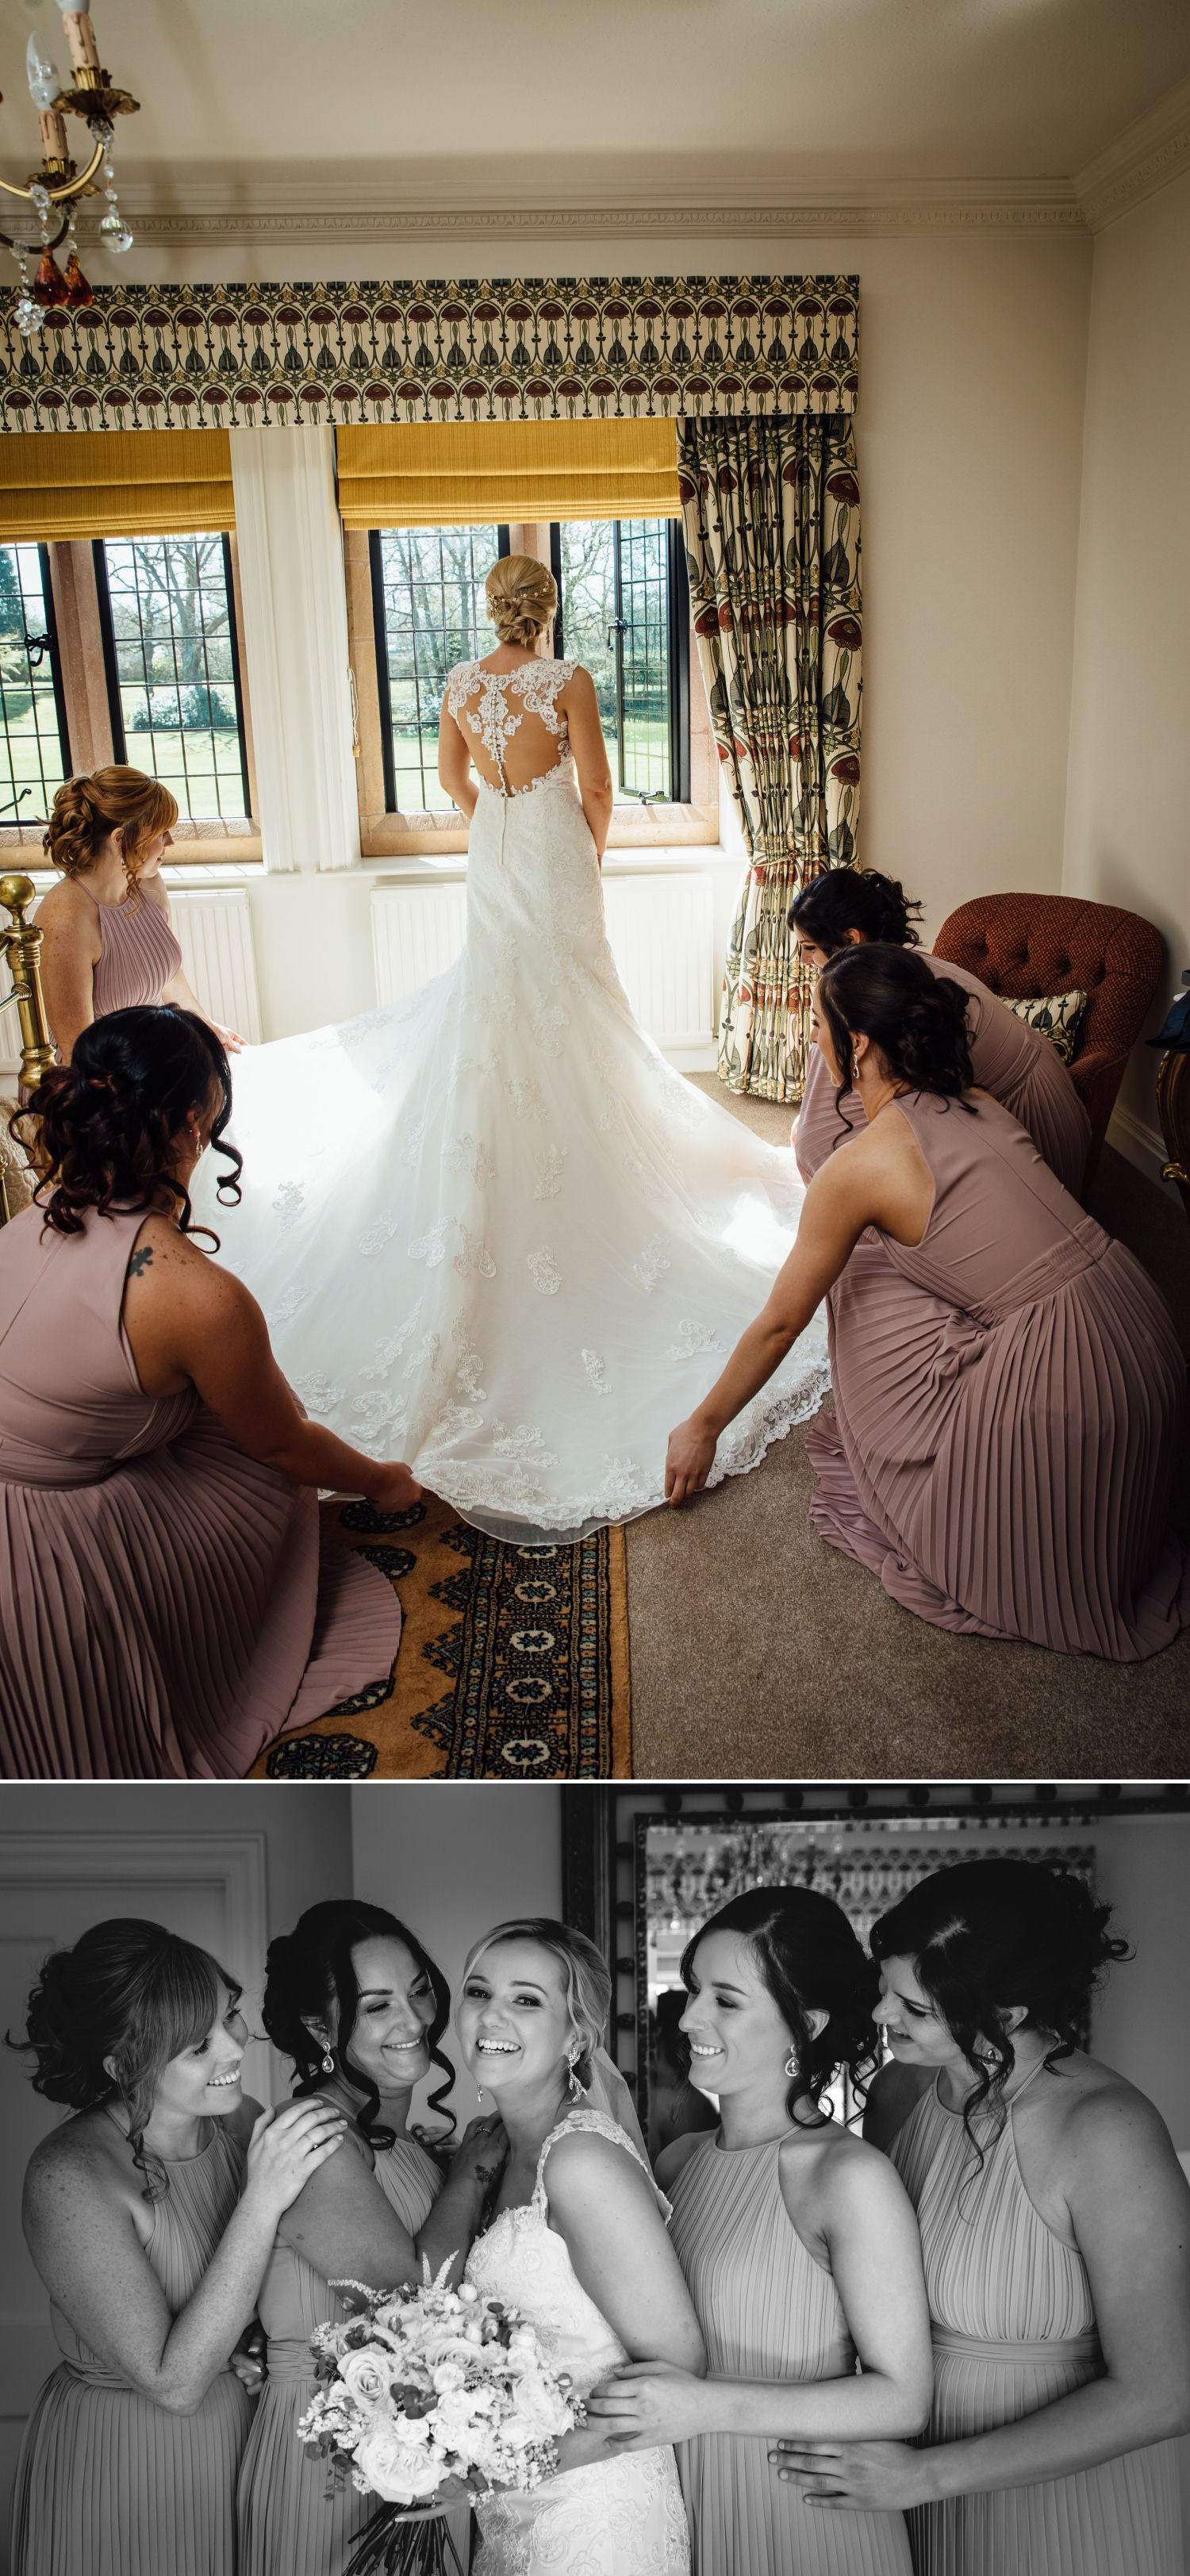 Bride getting ready at wedding venue Colshaw Hall in Cheshire